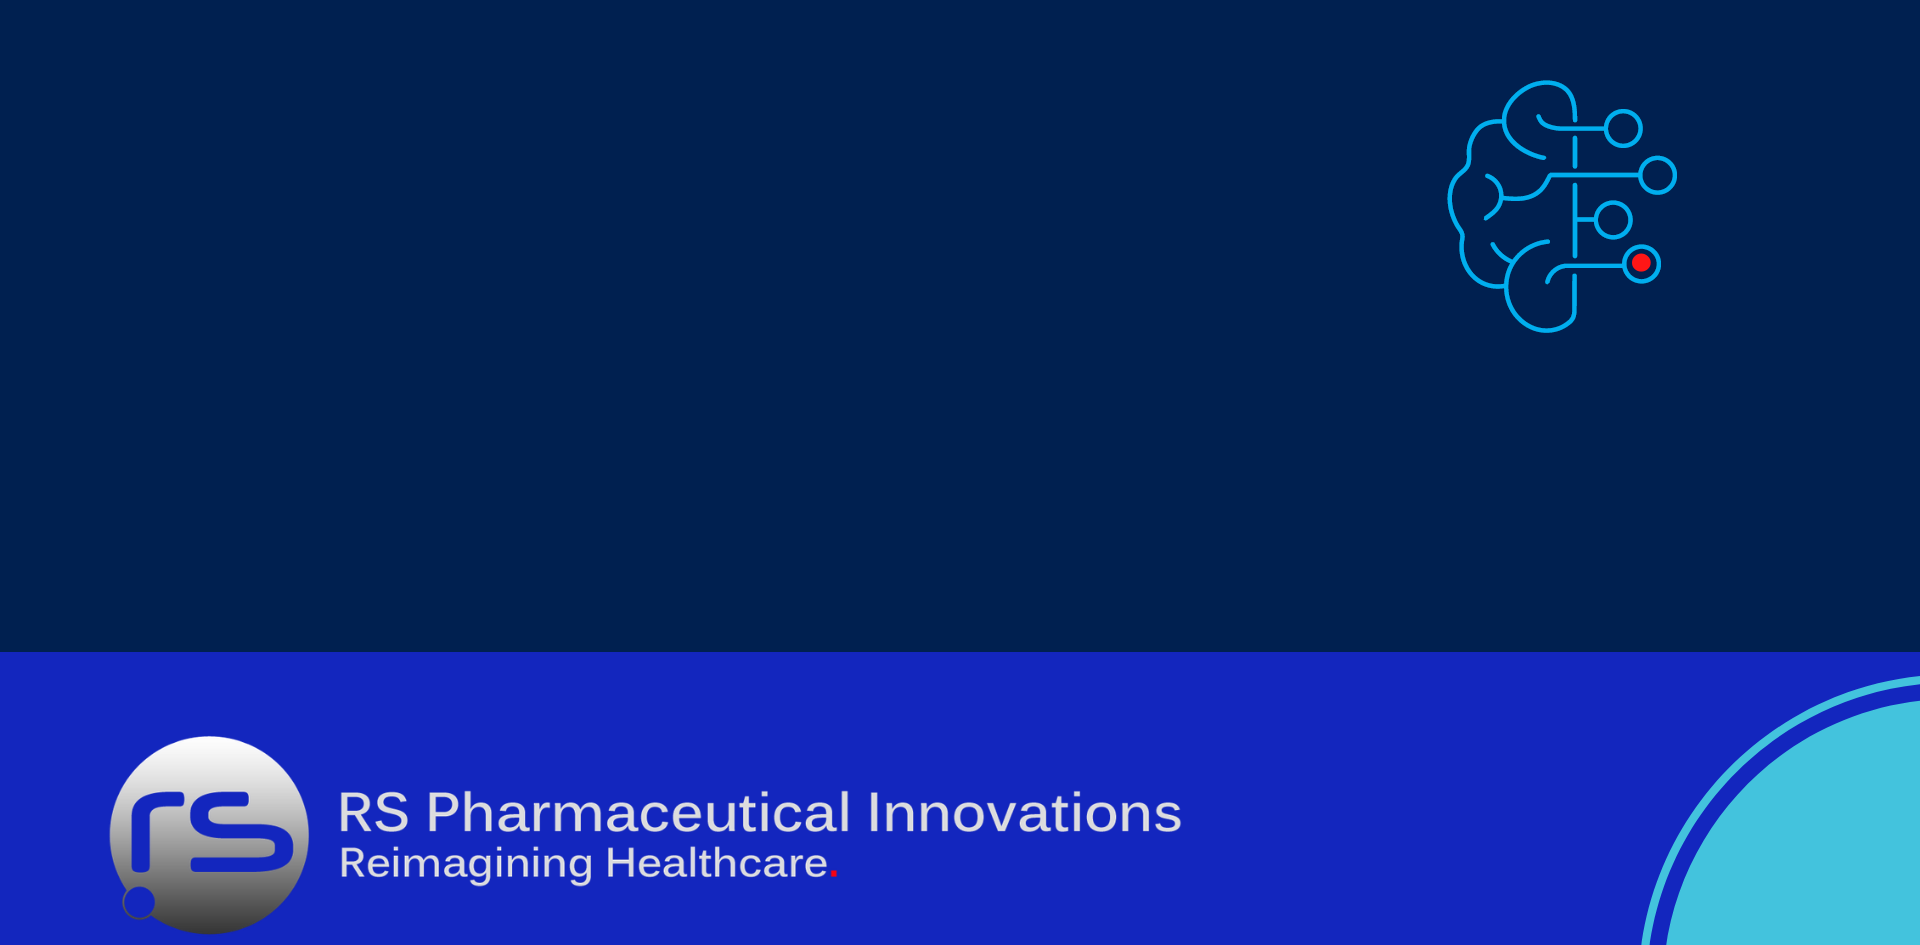 RS Pharmaceutical Innovations